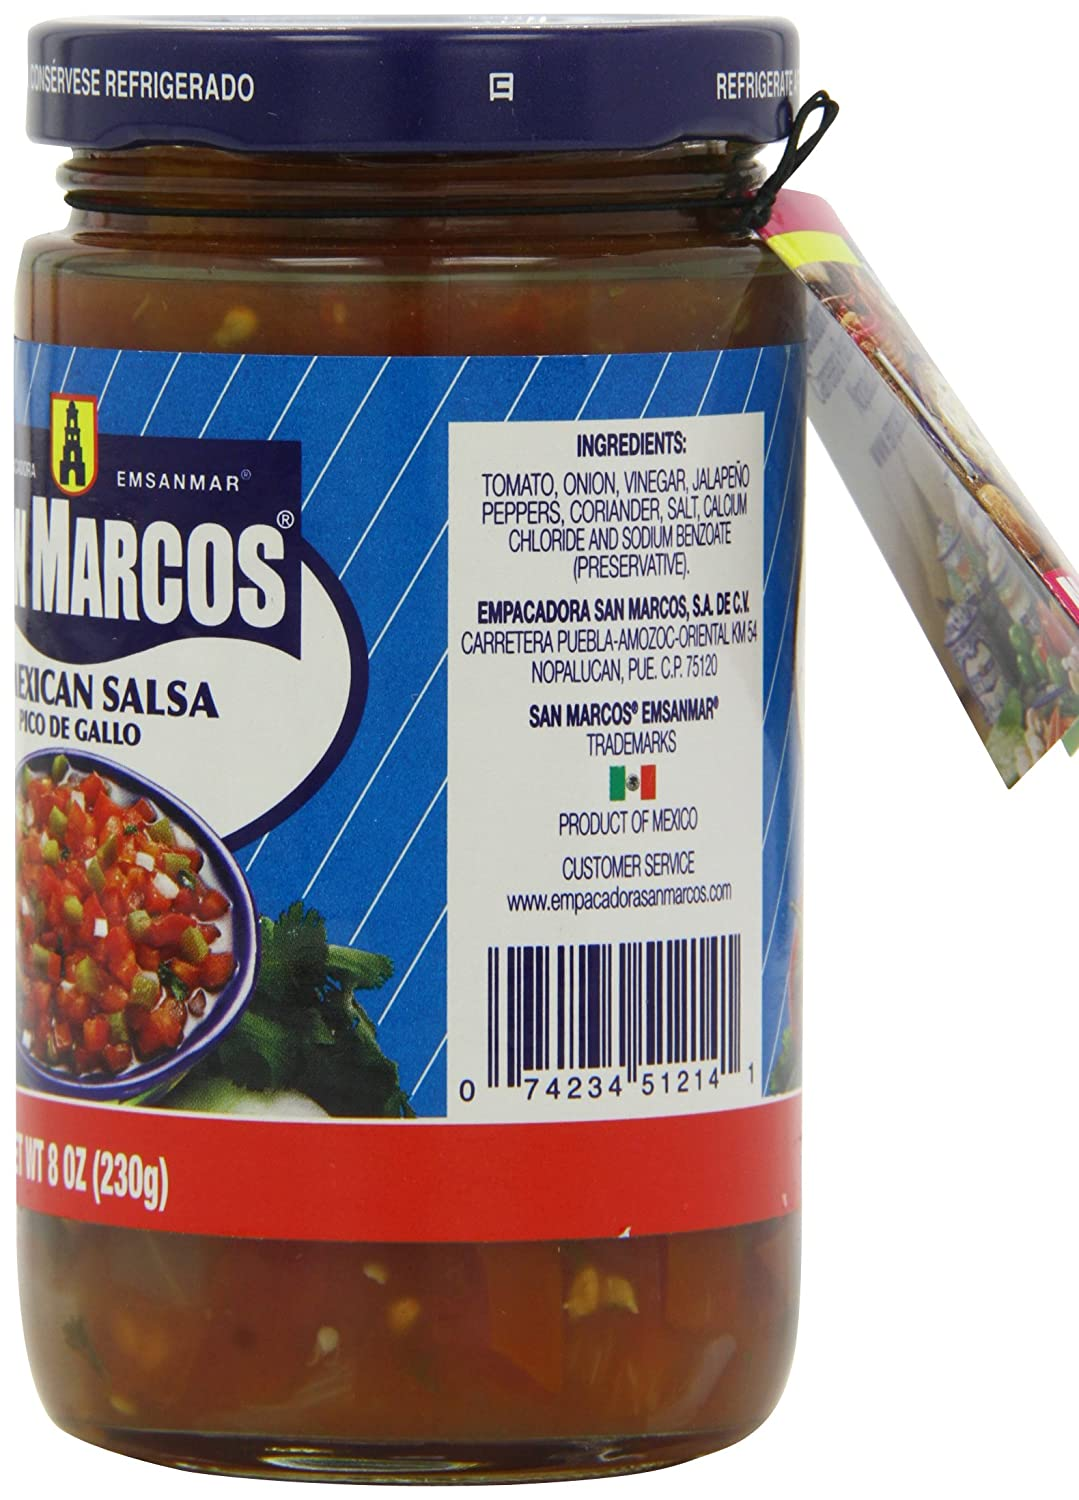 San Marcos Mexican Salsa 230 g (Pack of 4): Amazon.co.uk: Grocery